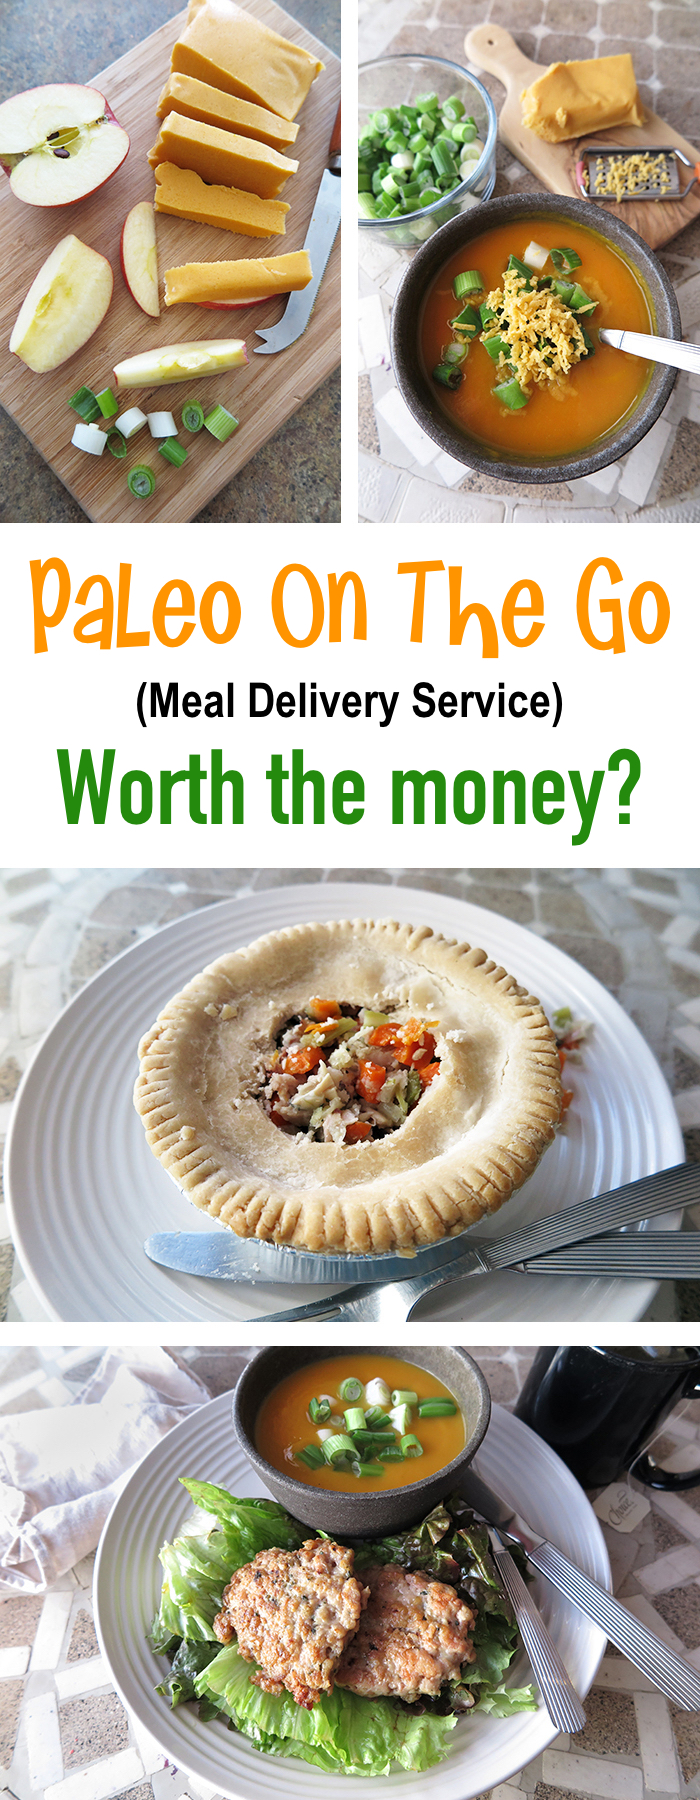 Paleo On The Go has an entire menu offering AIP-friendly meals for everyone following the strict elimination phase of the Paleo Autoimmune Protocol!